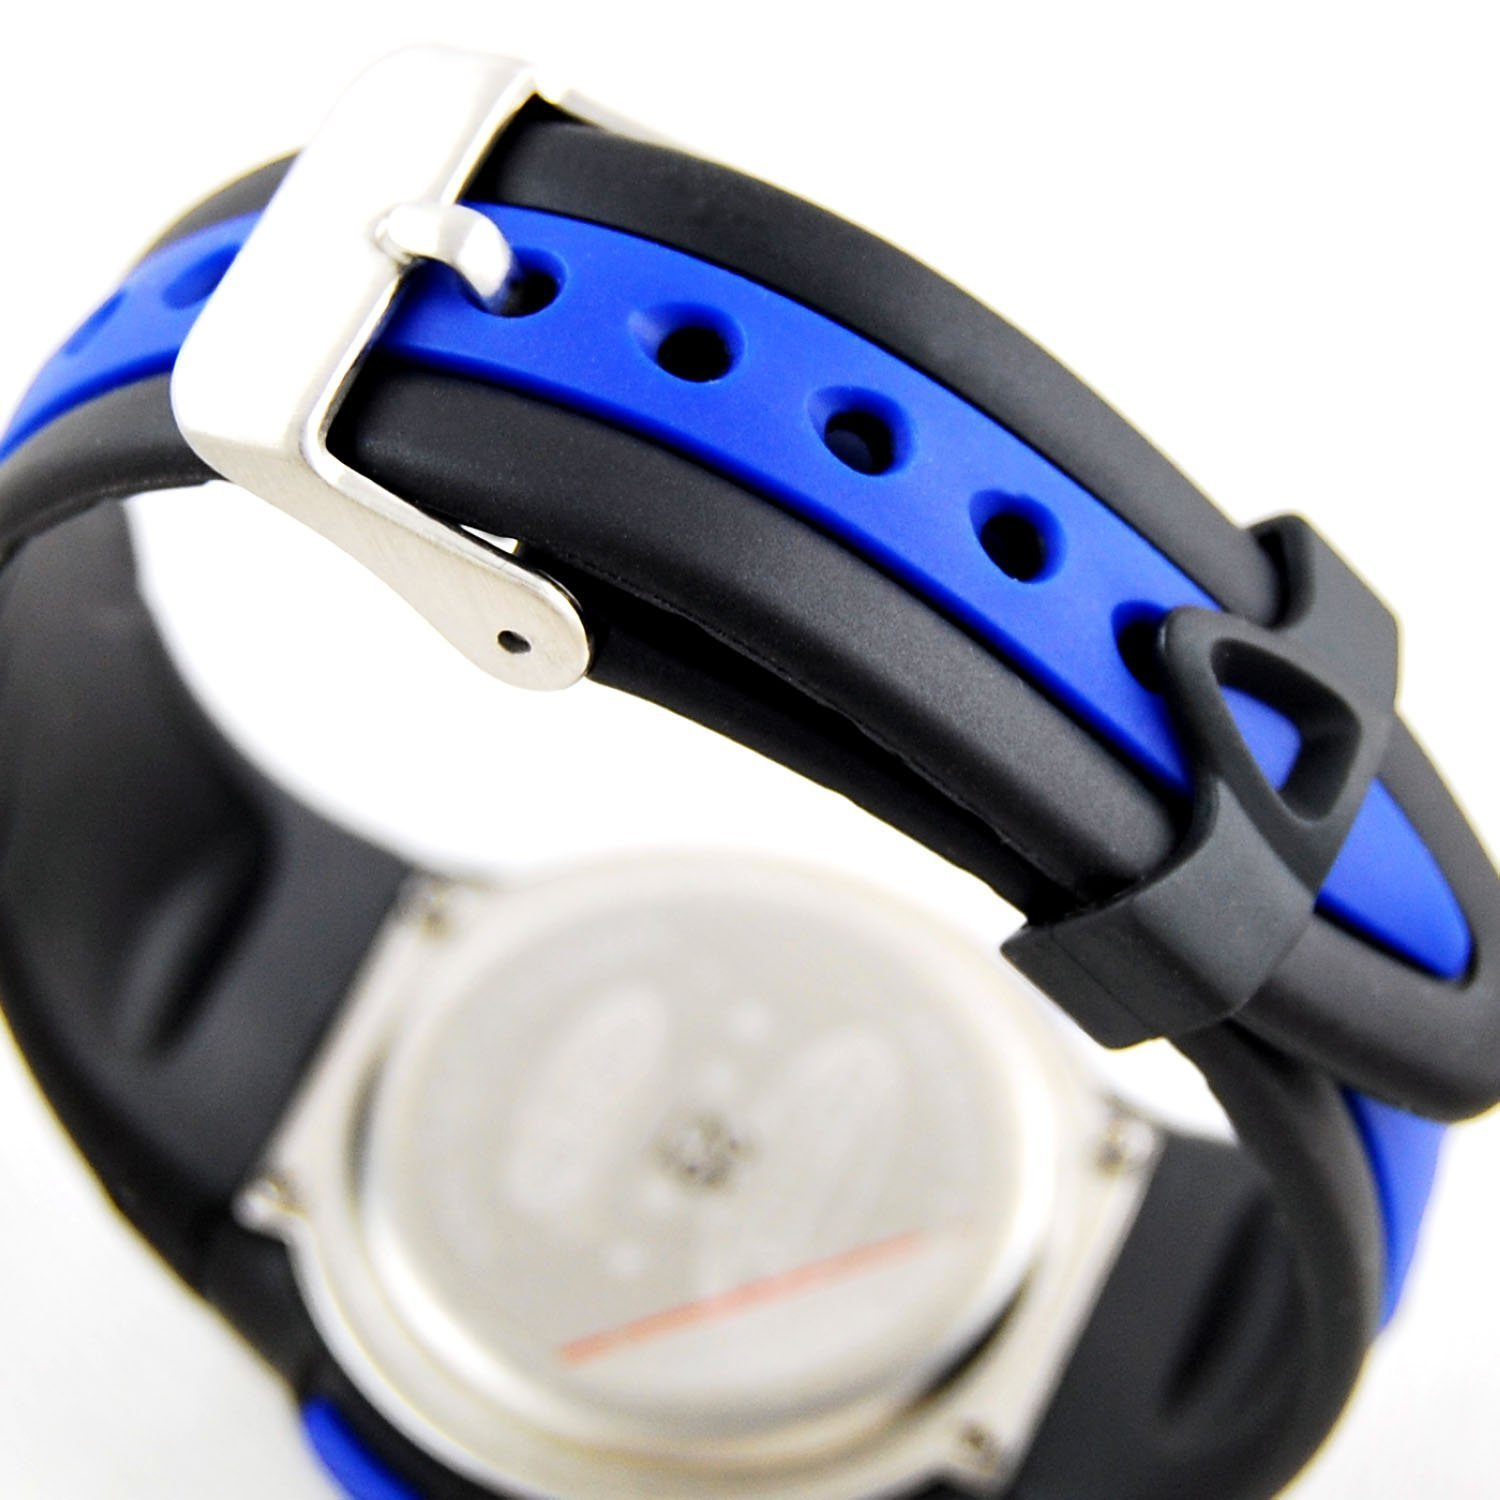 AZLAND Multiple Alarms Waterproof Kids Watches Boys Girls Digital Sports Teenagers Wristwatch (3 Alarms, for Age 4-12, Blue) by AZLAND (Image #5)